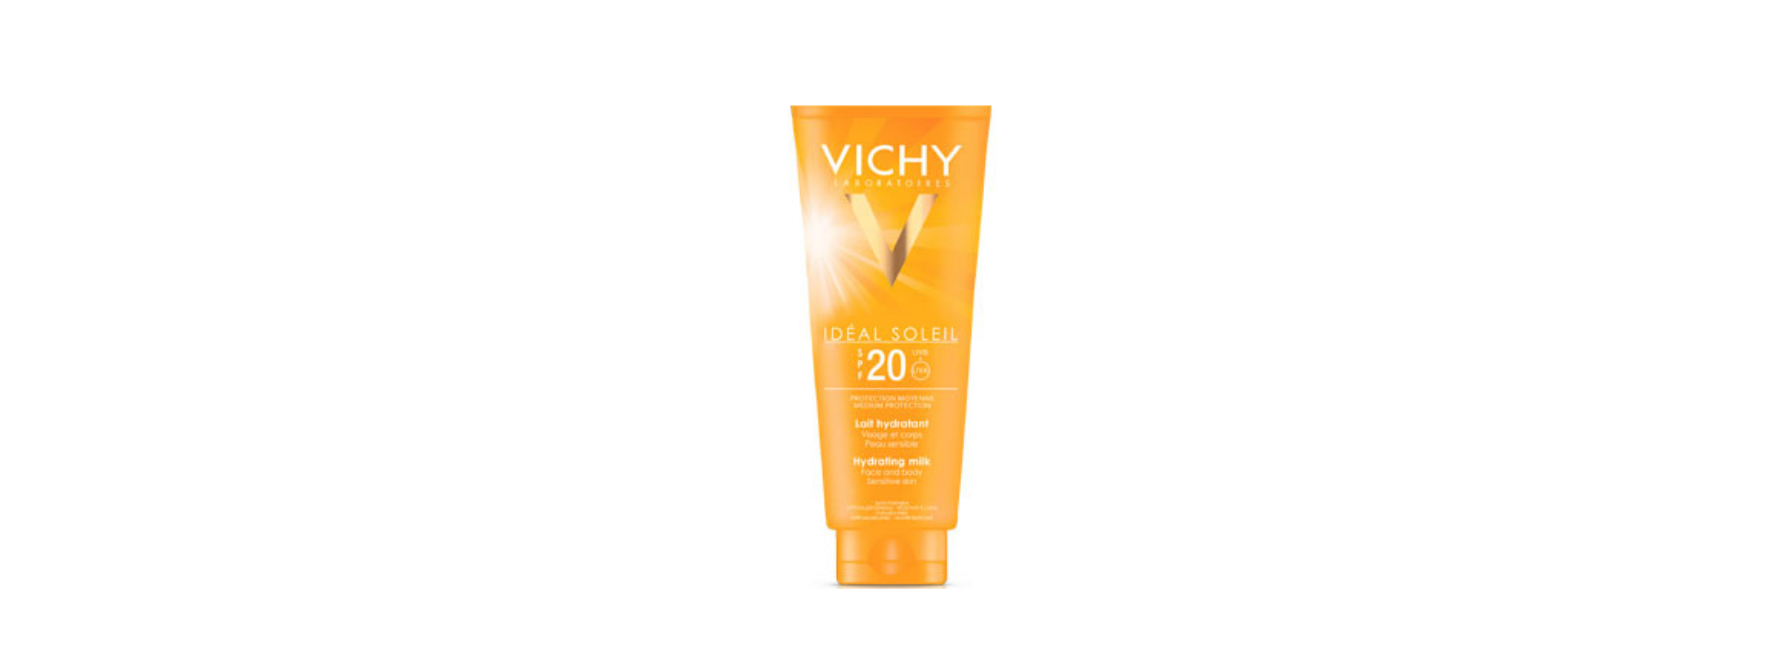 Vichy Idéal soleil hydrating milk face and body sensitive skin SPF 20